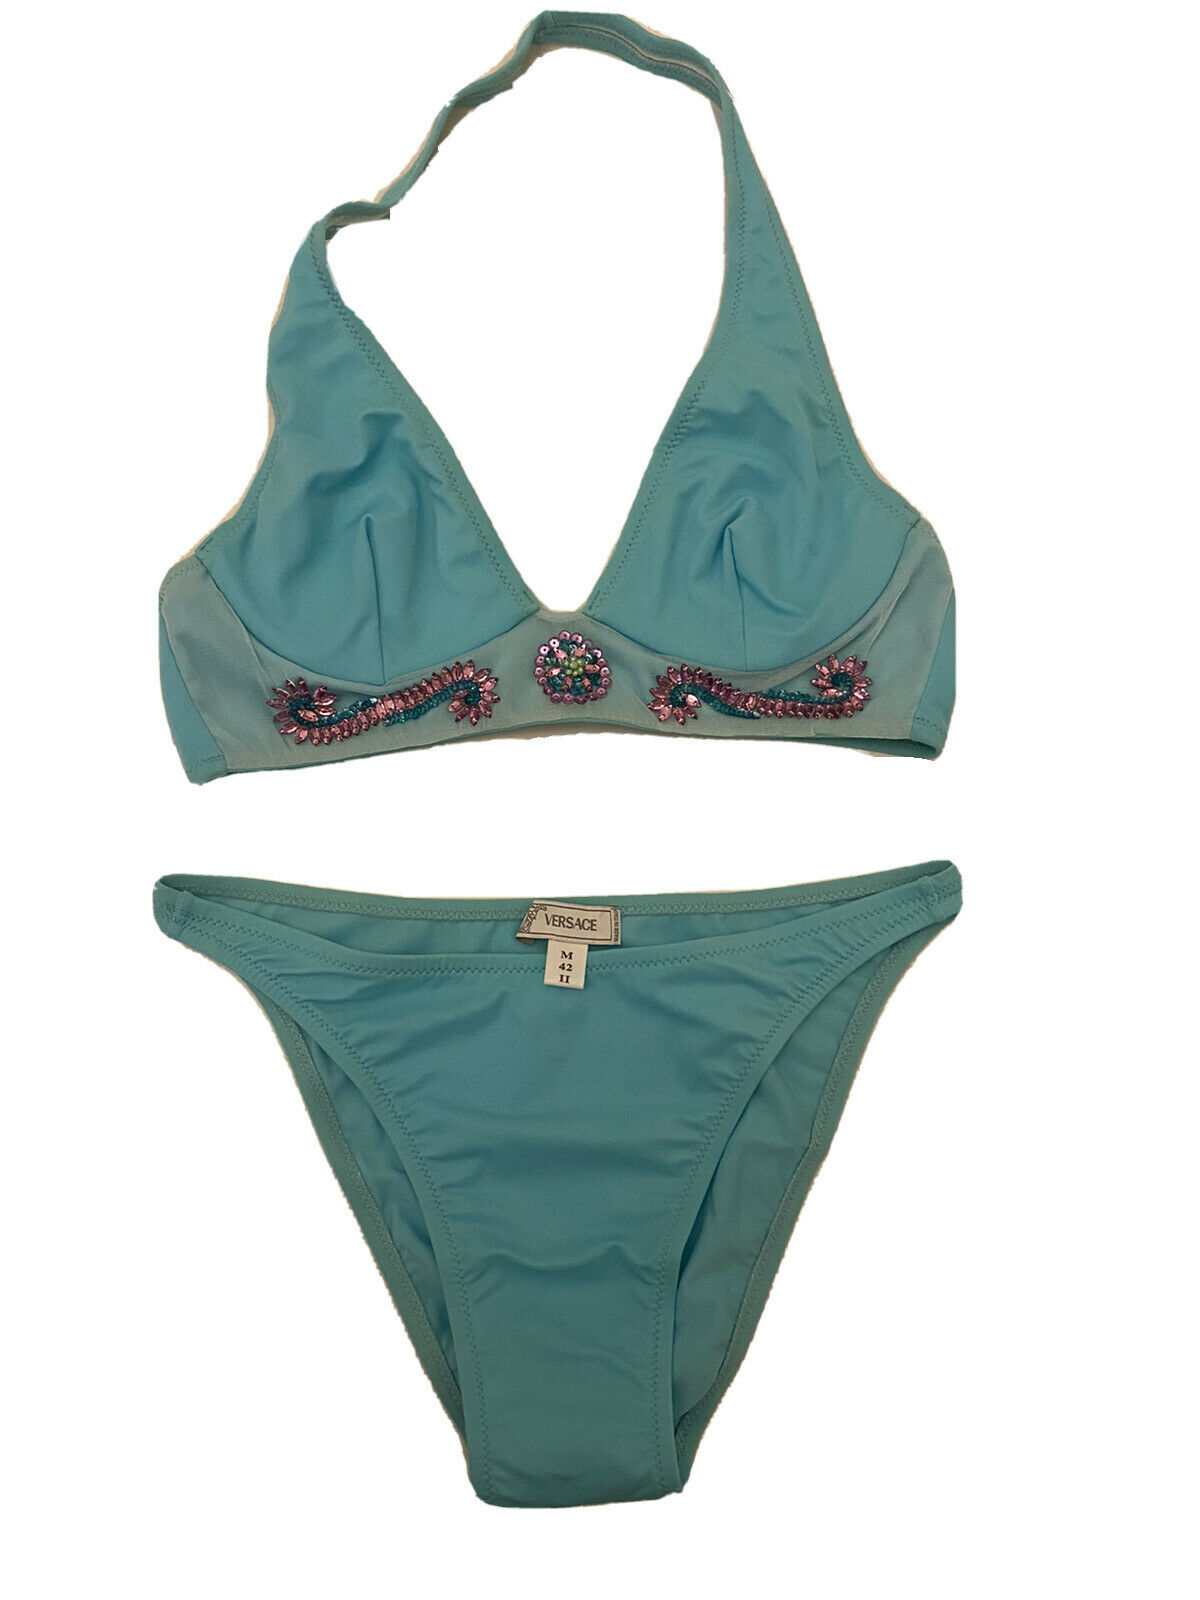 GIANNI VERSACE COUTURE BLUE BIKINI TOP & BOTTOM WITH CRYSTAL TRIMS SIZE...